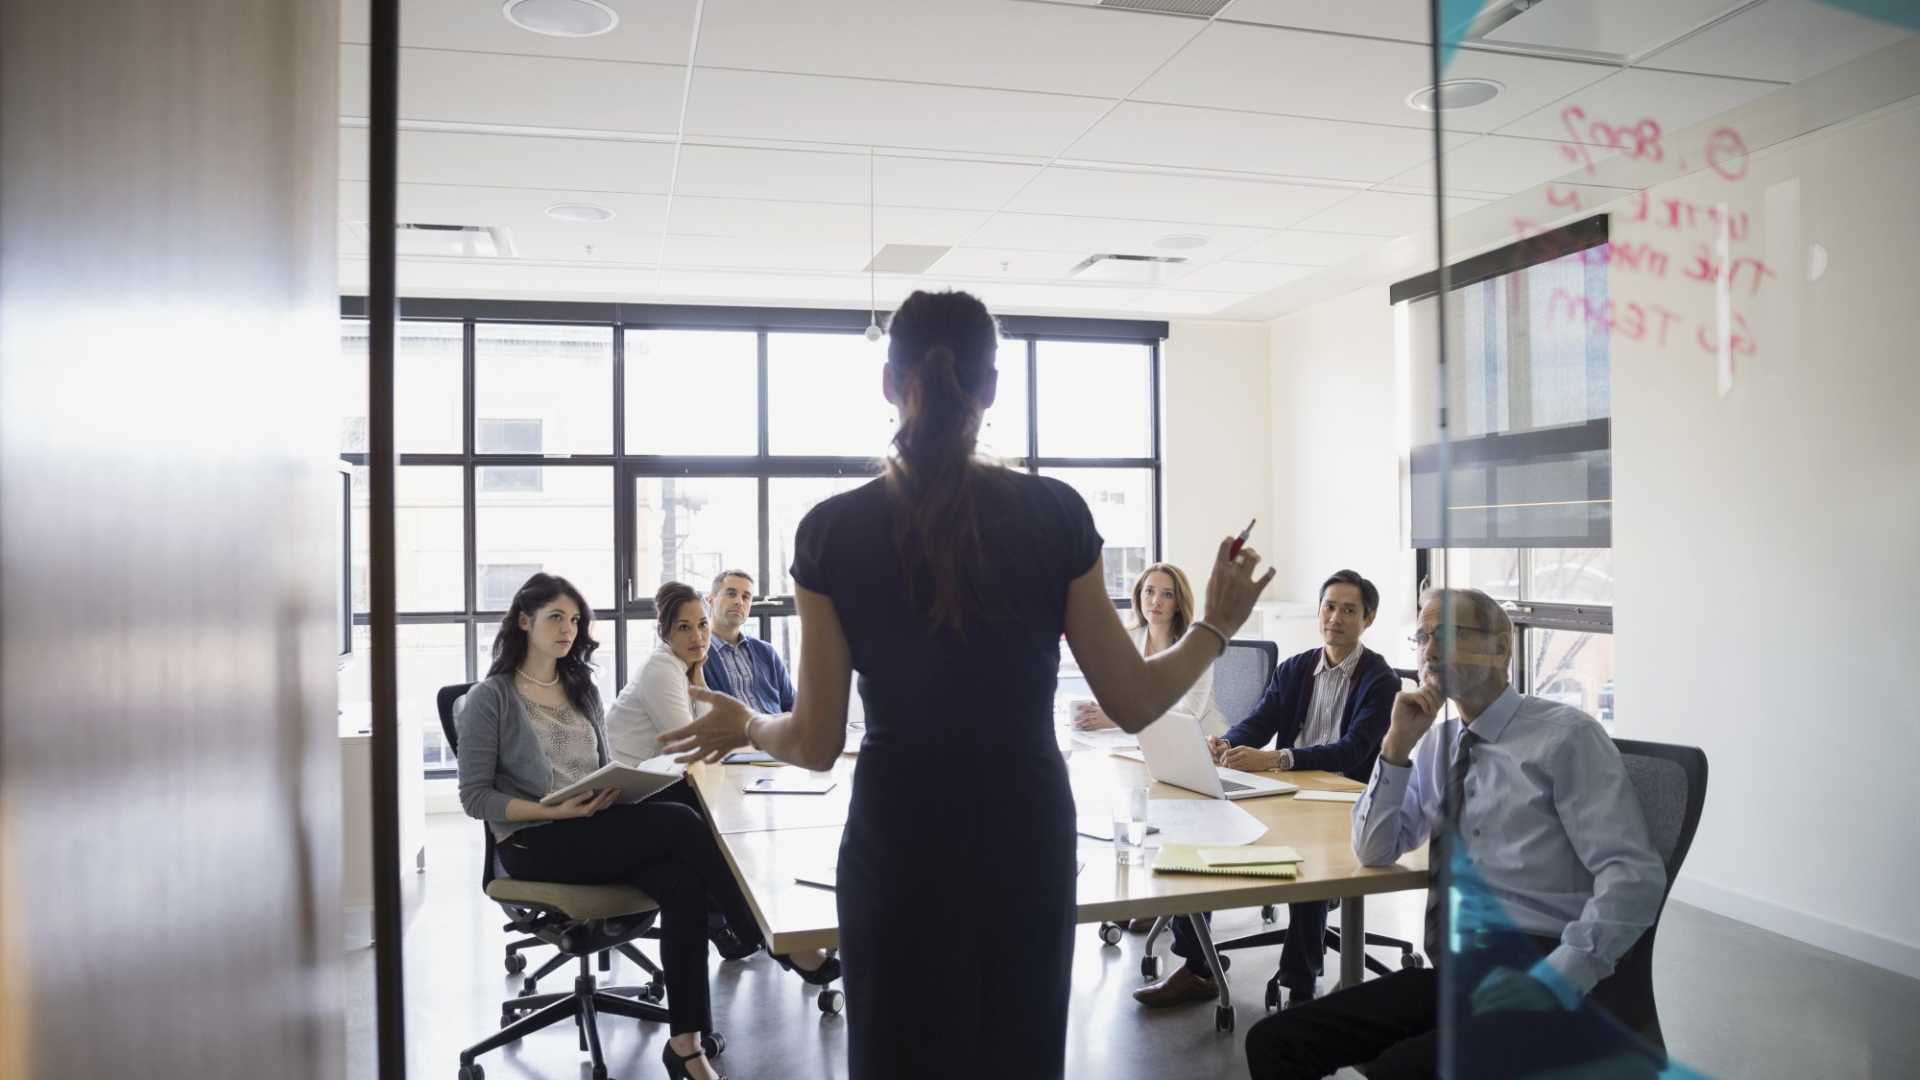 5 Things That Happen When a Real Leader Enters a Room